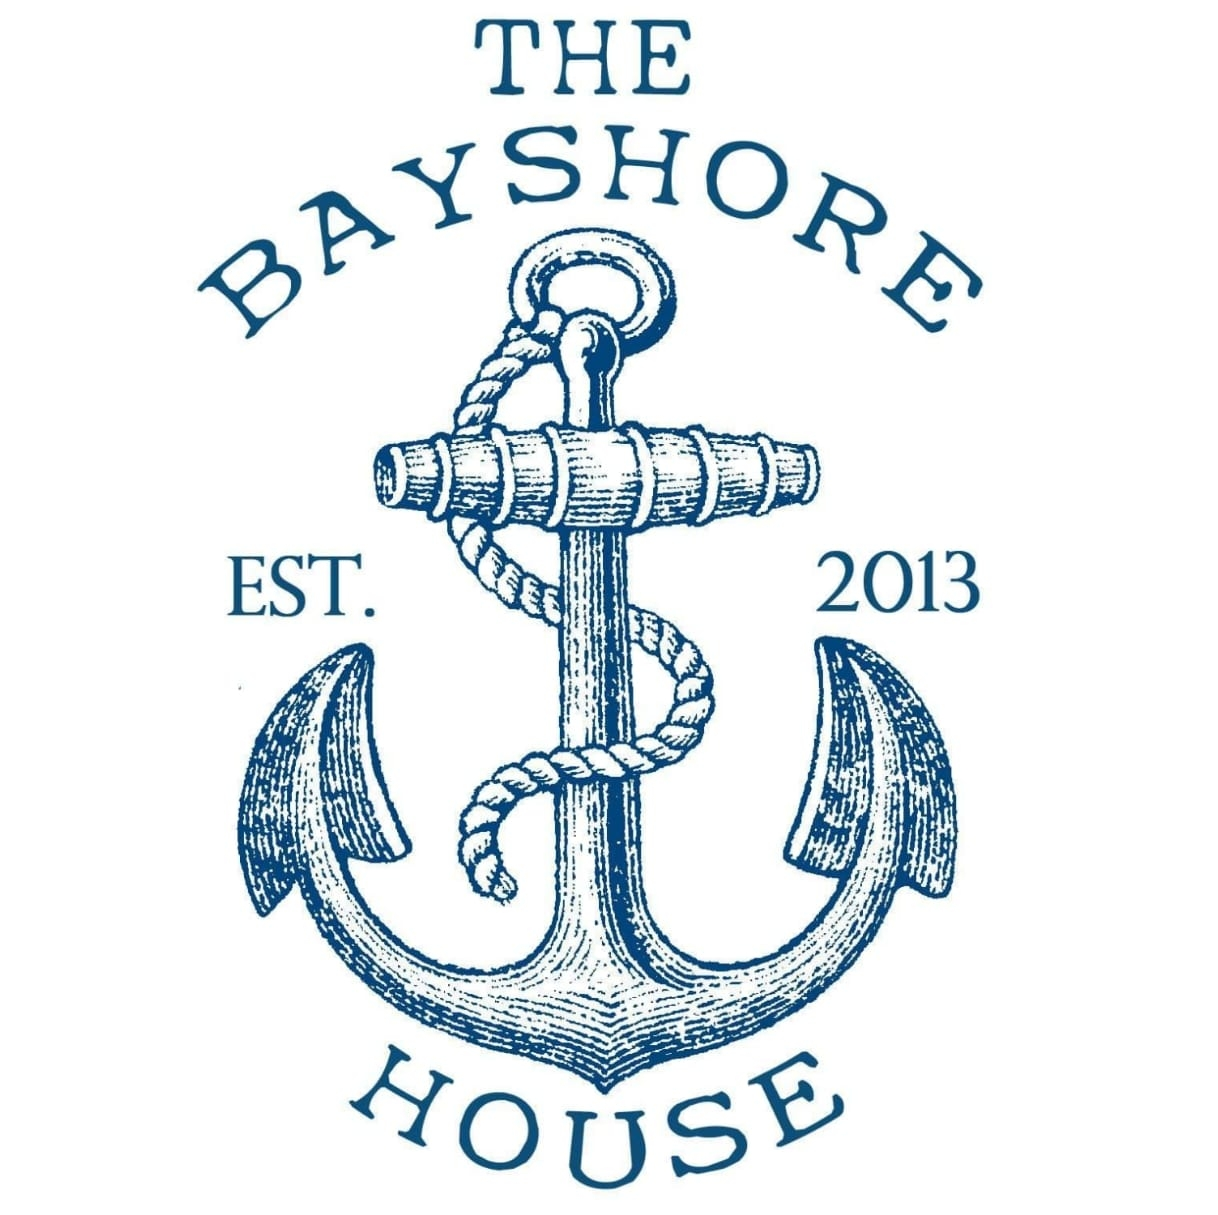 Bayshore House Logo - Mens Sober Living